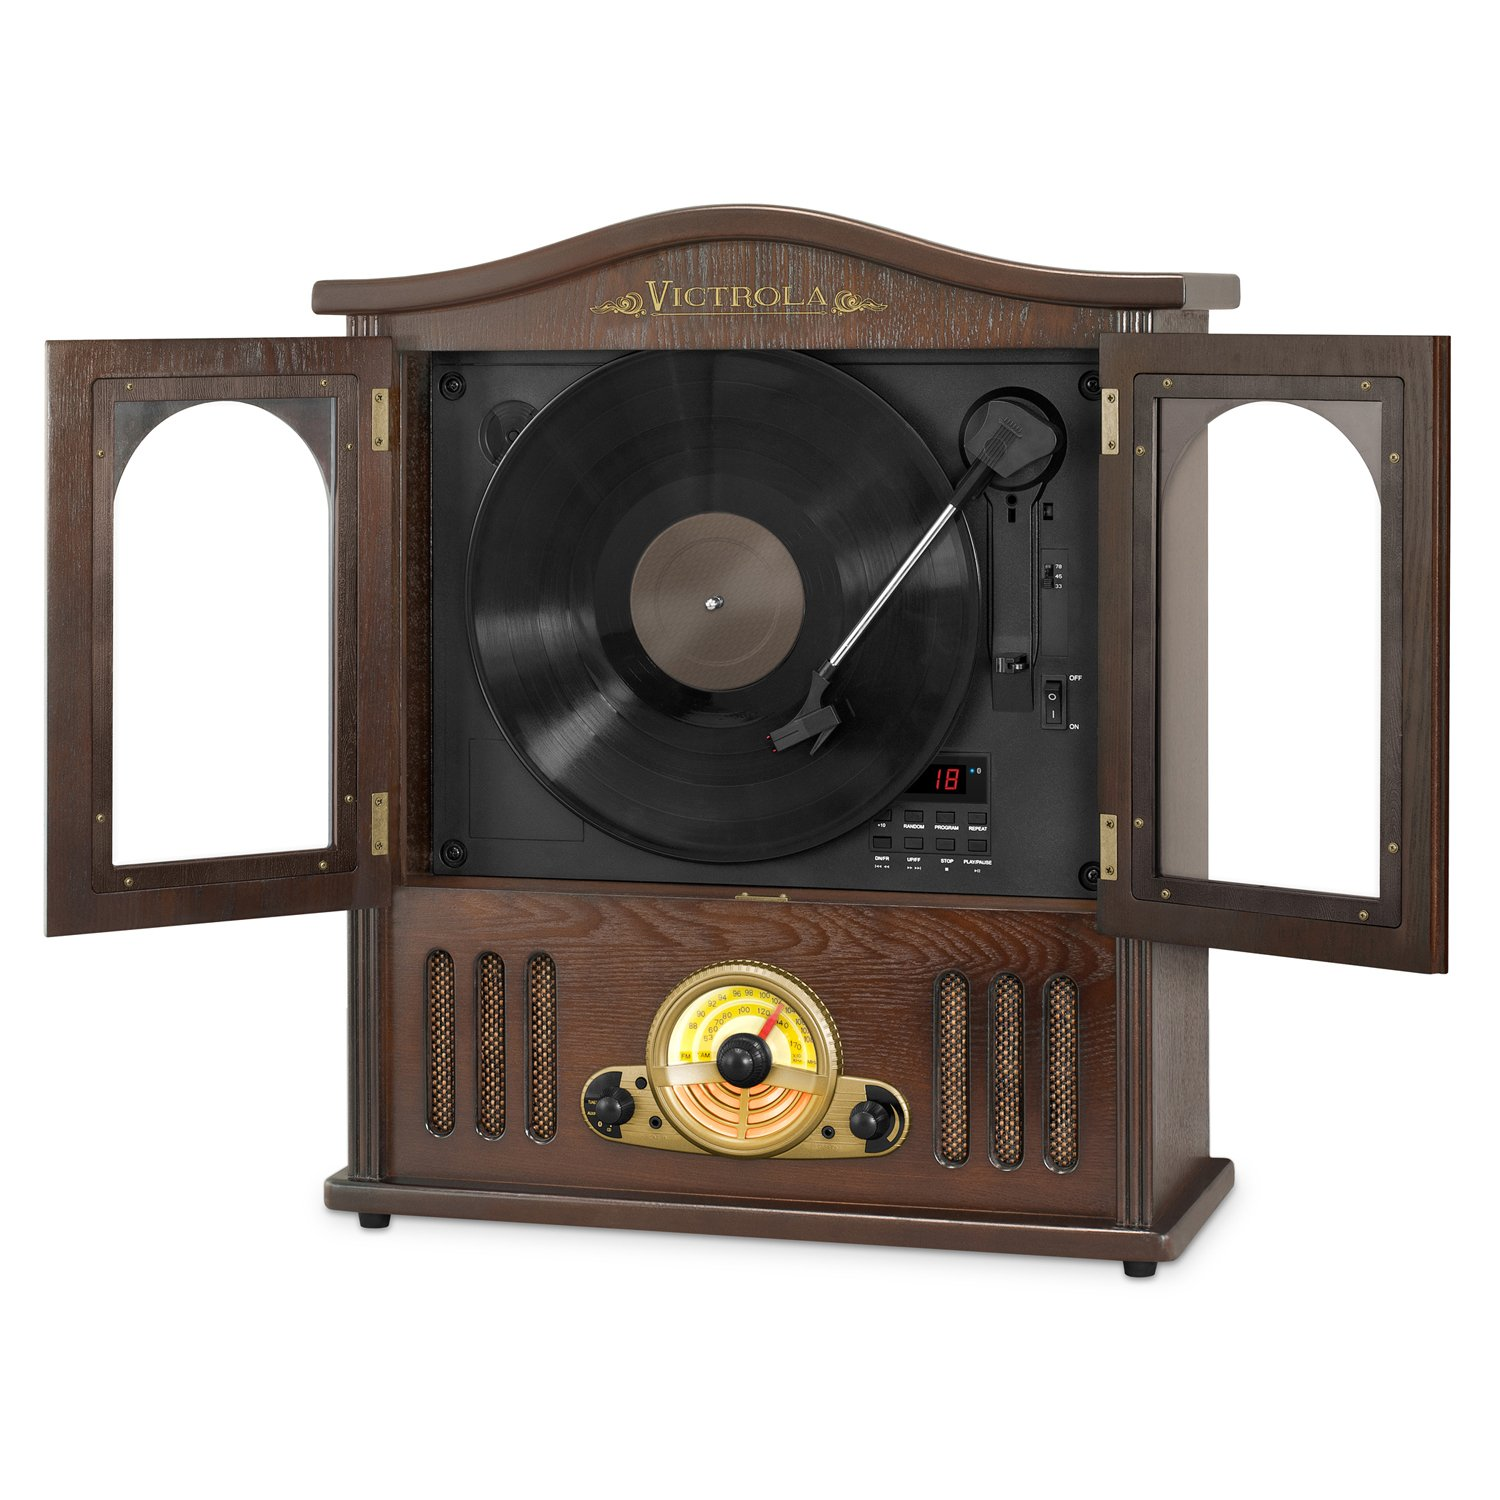 Victrola 3-Speed Bluetooth Suitcase Turntable with CD Player and Speakers, Orange Innovative Technology VCS-551 Orange